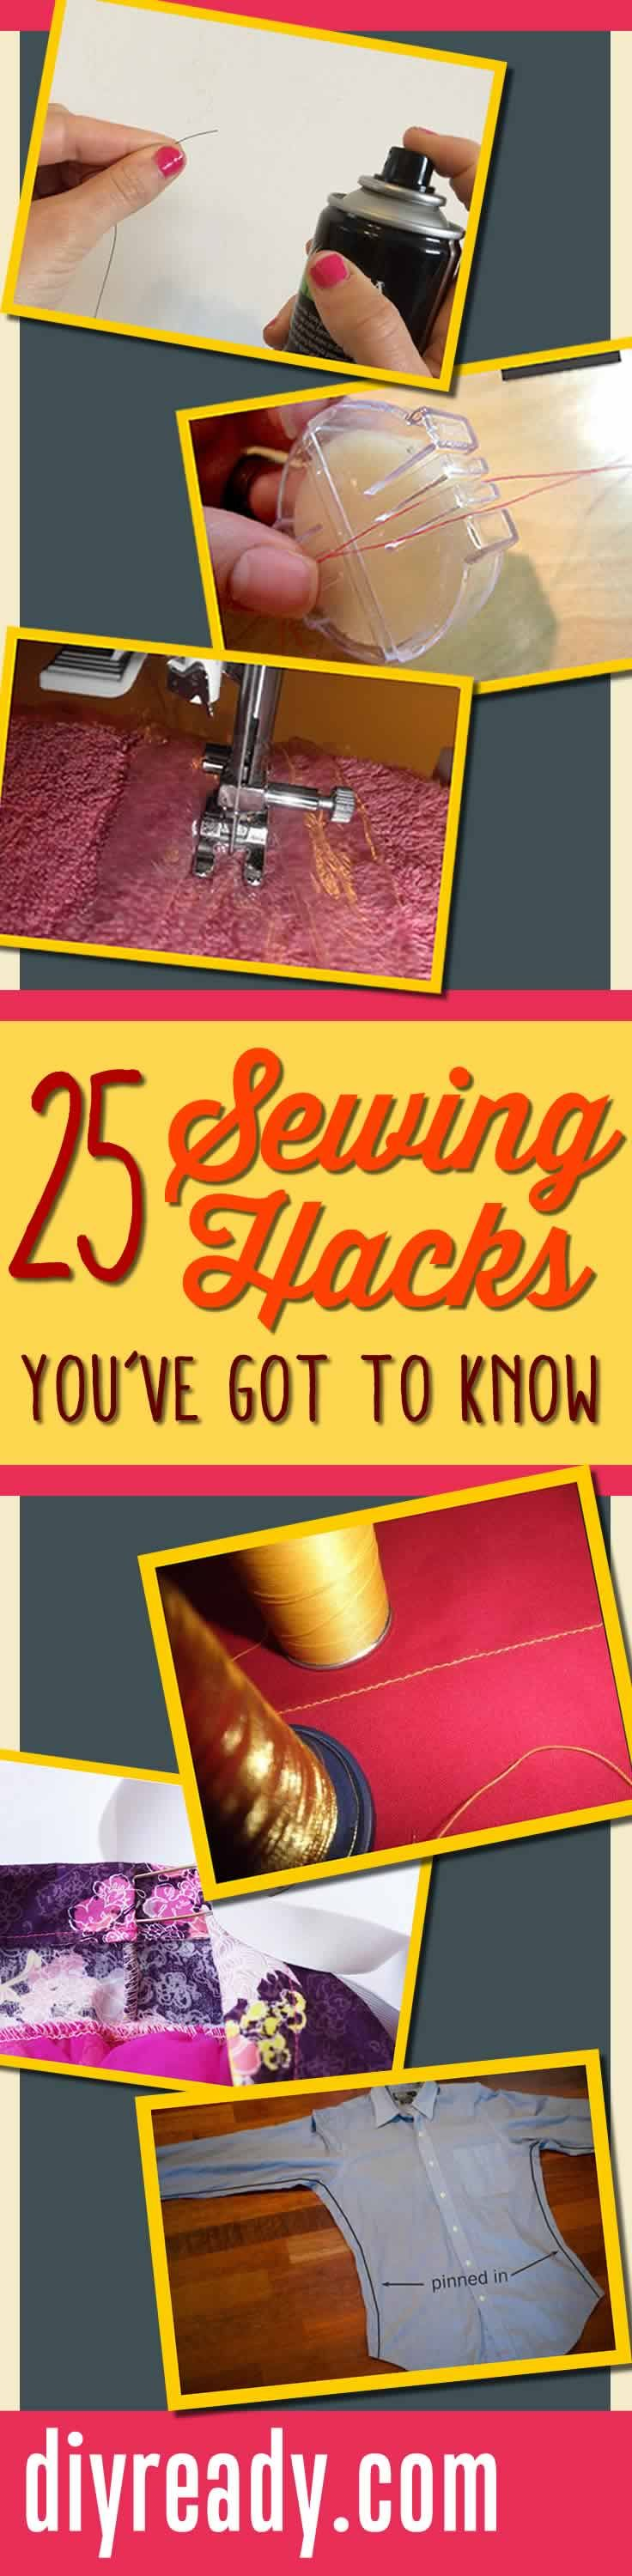 25 Best Sewing Hacks and Sewing Tips: After sewing for years I've naturally acquired a handful of tips and tricks. I've gathered together 25 of my favorites just for you. Read on for some of the best sewing hacks out there, and you'll be master of the machine in no time. Don't miss out on this awesome list of sewing hacks you'll want to try at home. I've seen tons of sewing tips, but none that were as simple and as straightforward as this one. You're going to be sewing like a pro a